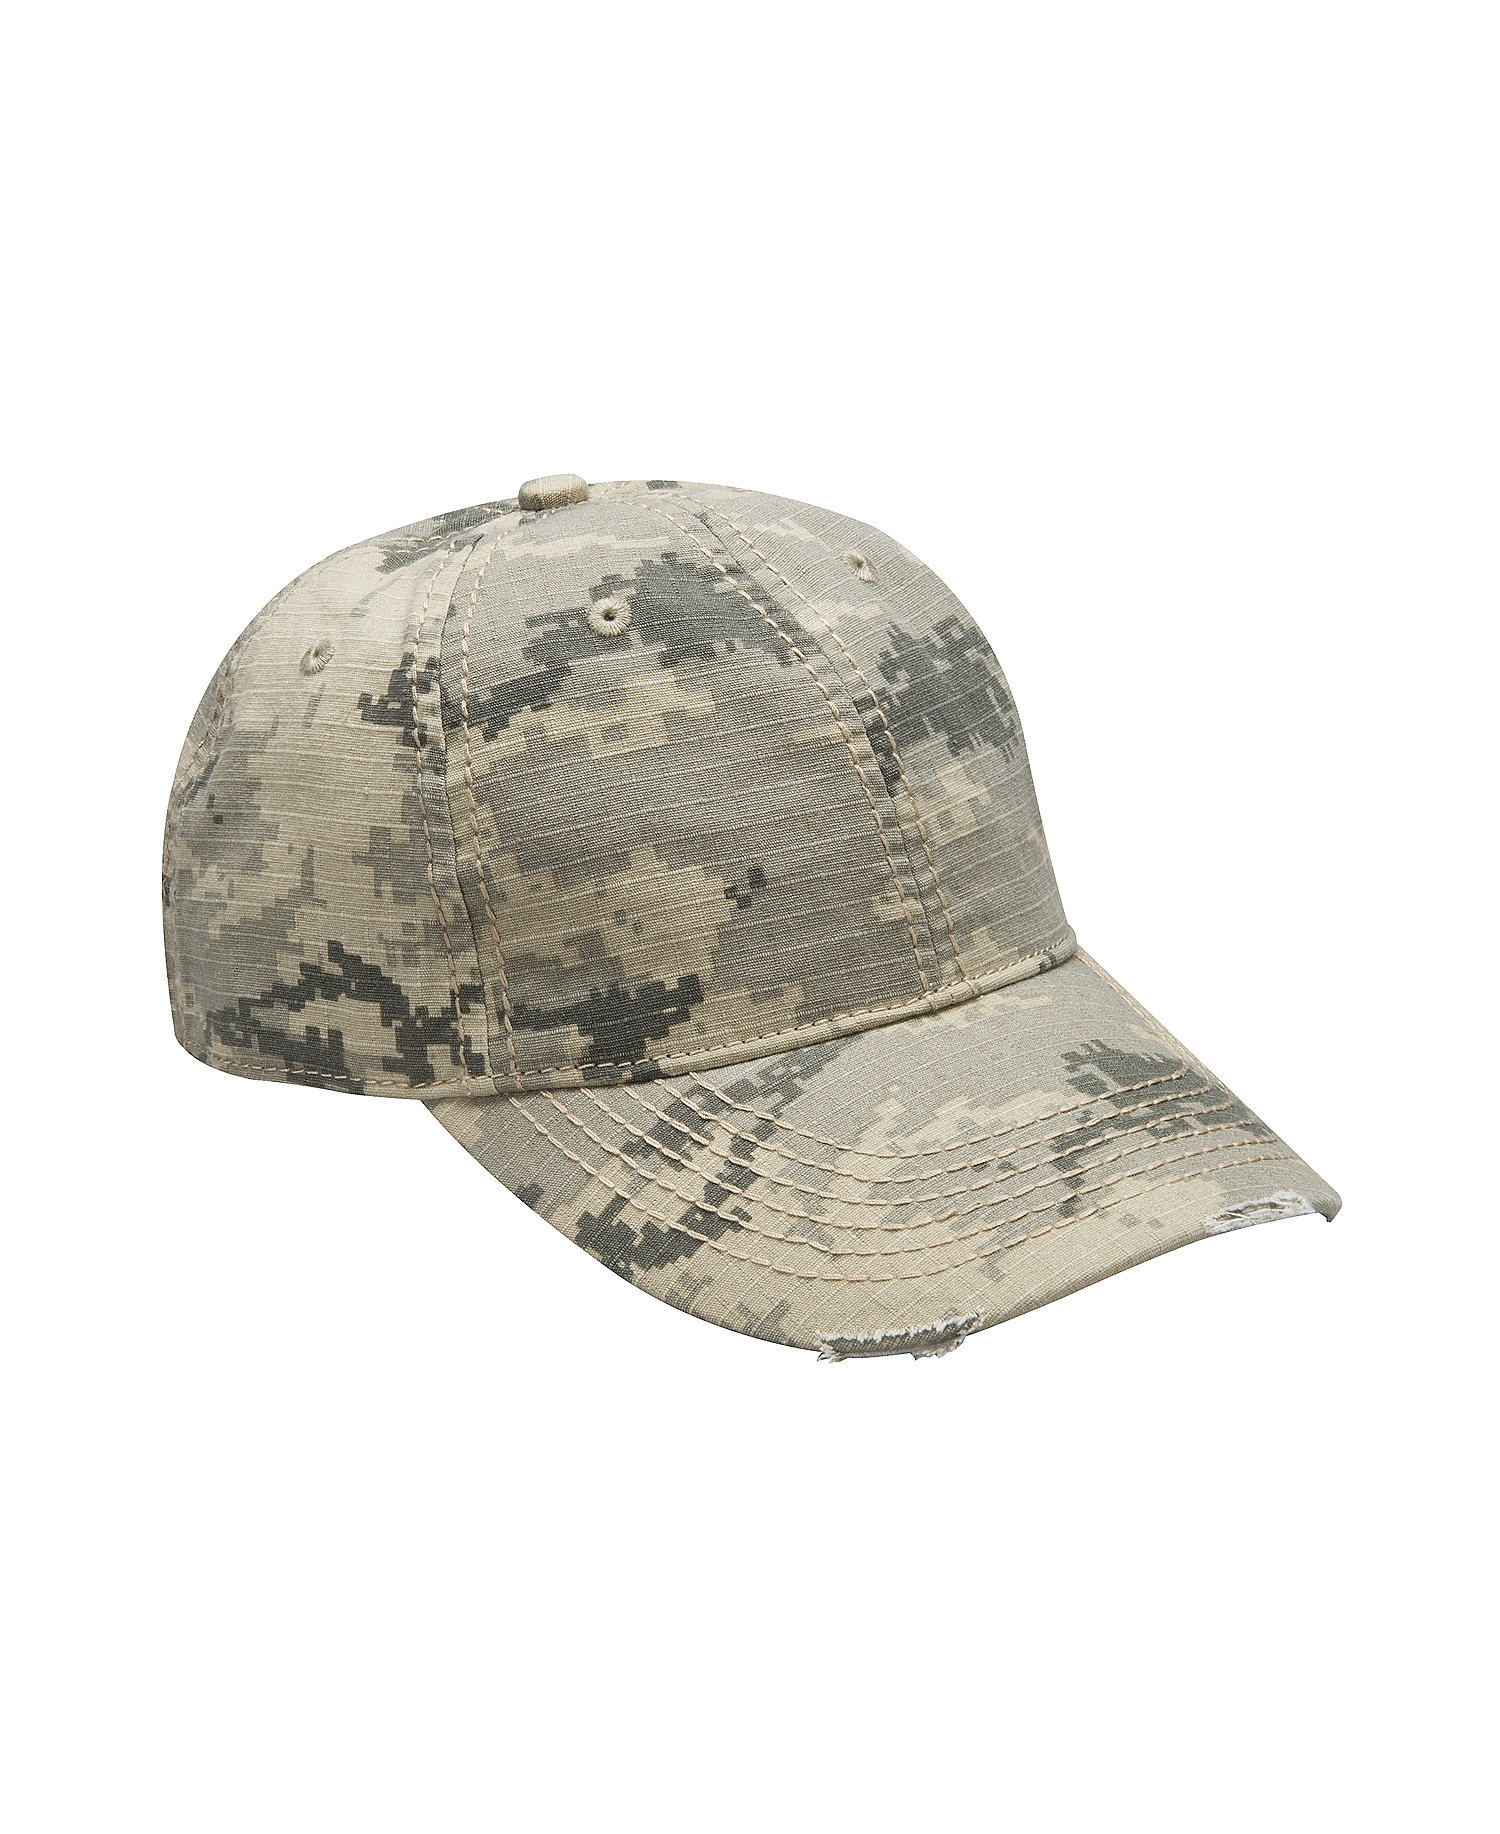 Adams IM101 - Image Maker Cap